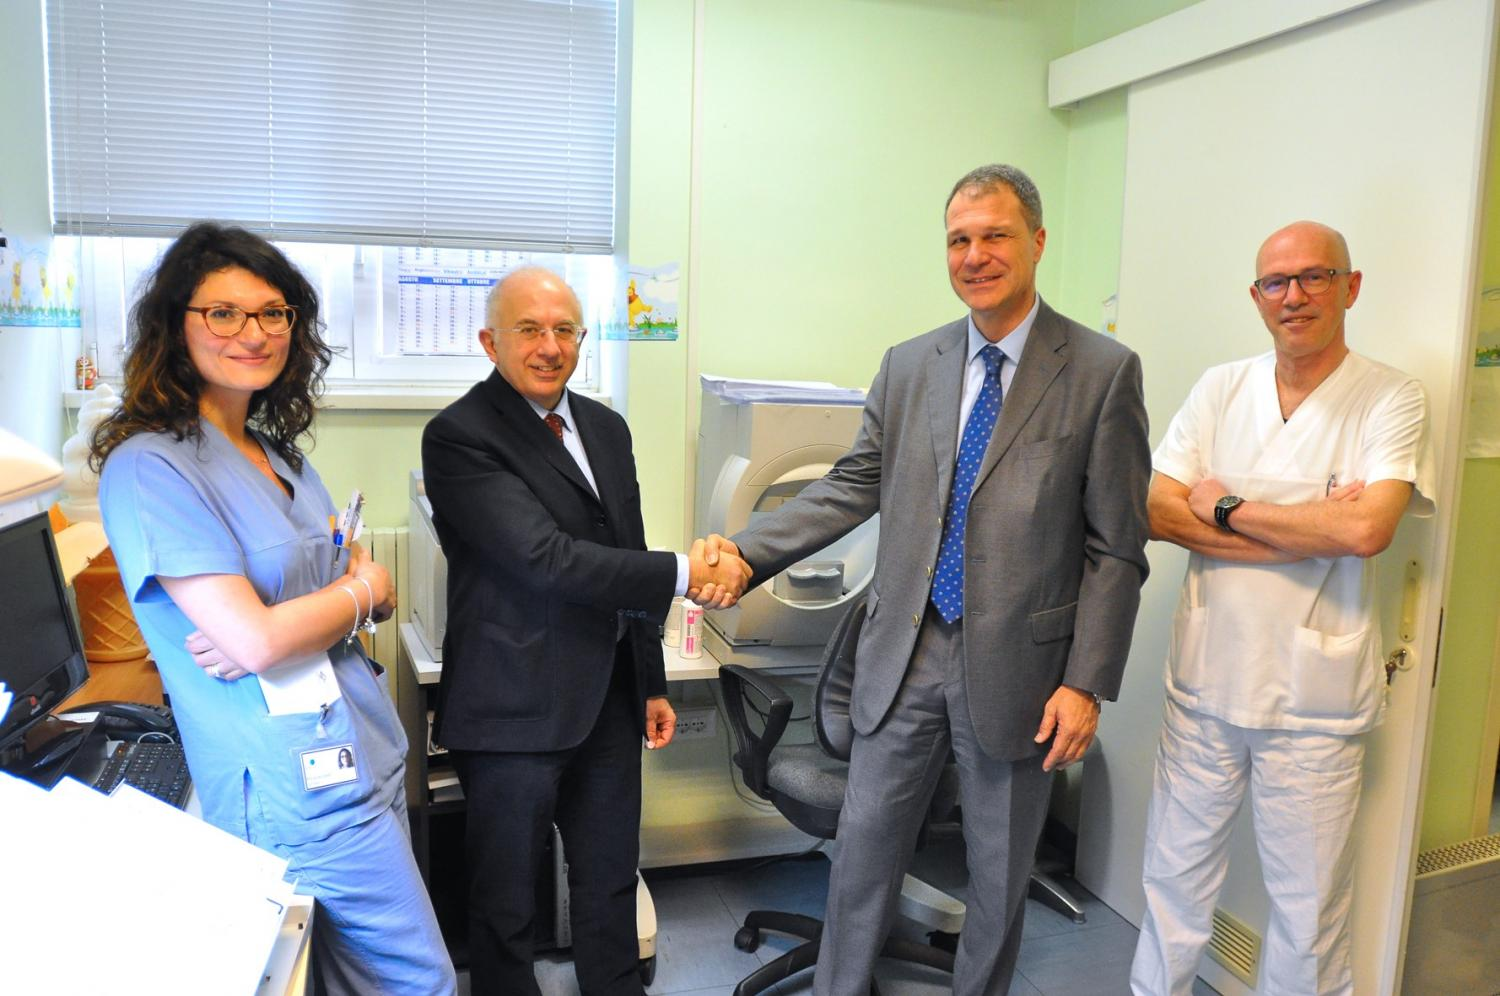 6,000 EUROS DONATED TO THE BURLO GAROFOLO HOSPITAL